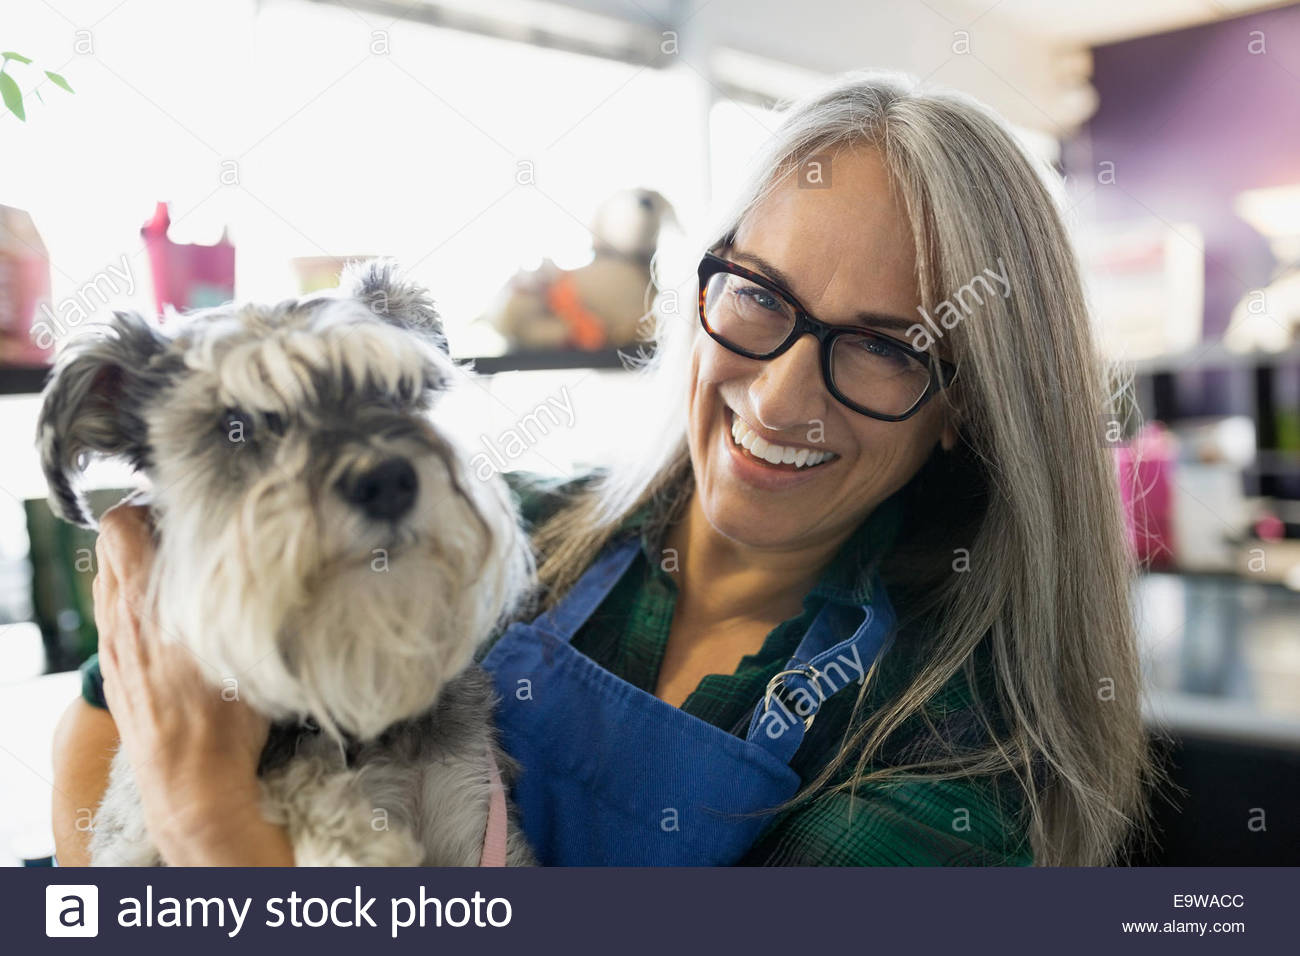 Portrait of smiling dog daycare owner with schnauzer - Stock Image